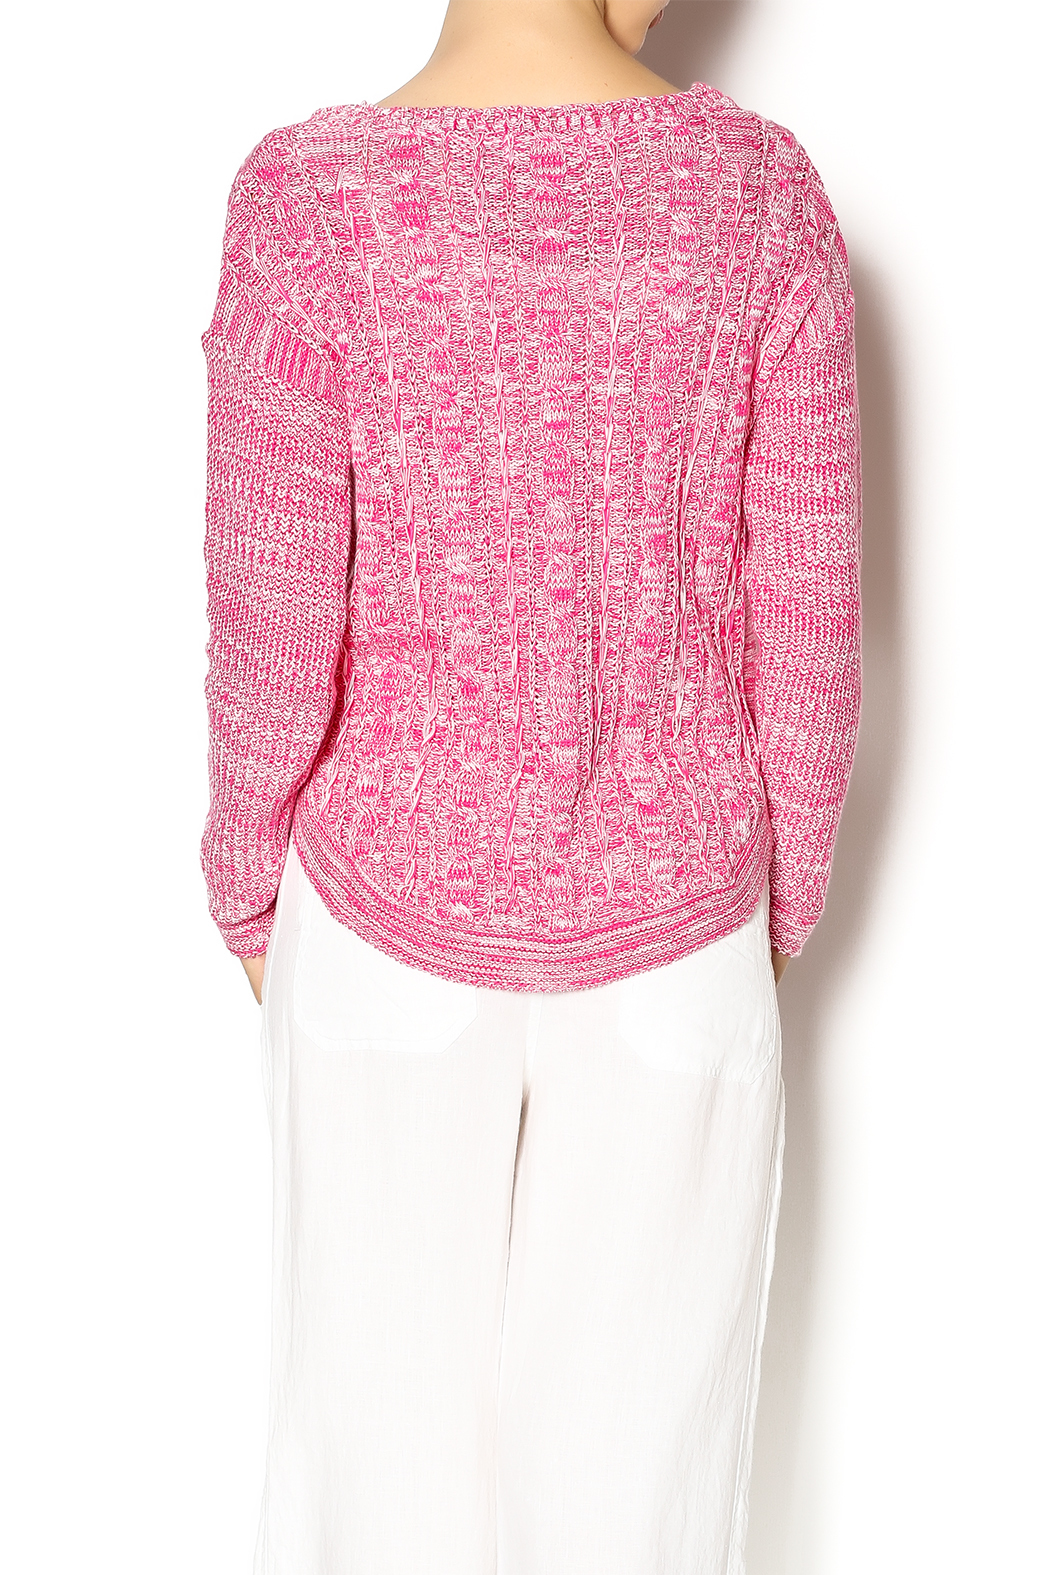 Cotton Country Pink Washable Cotton Sweater From Montana